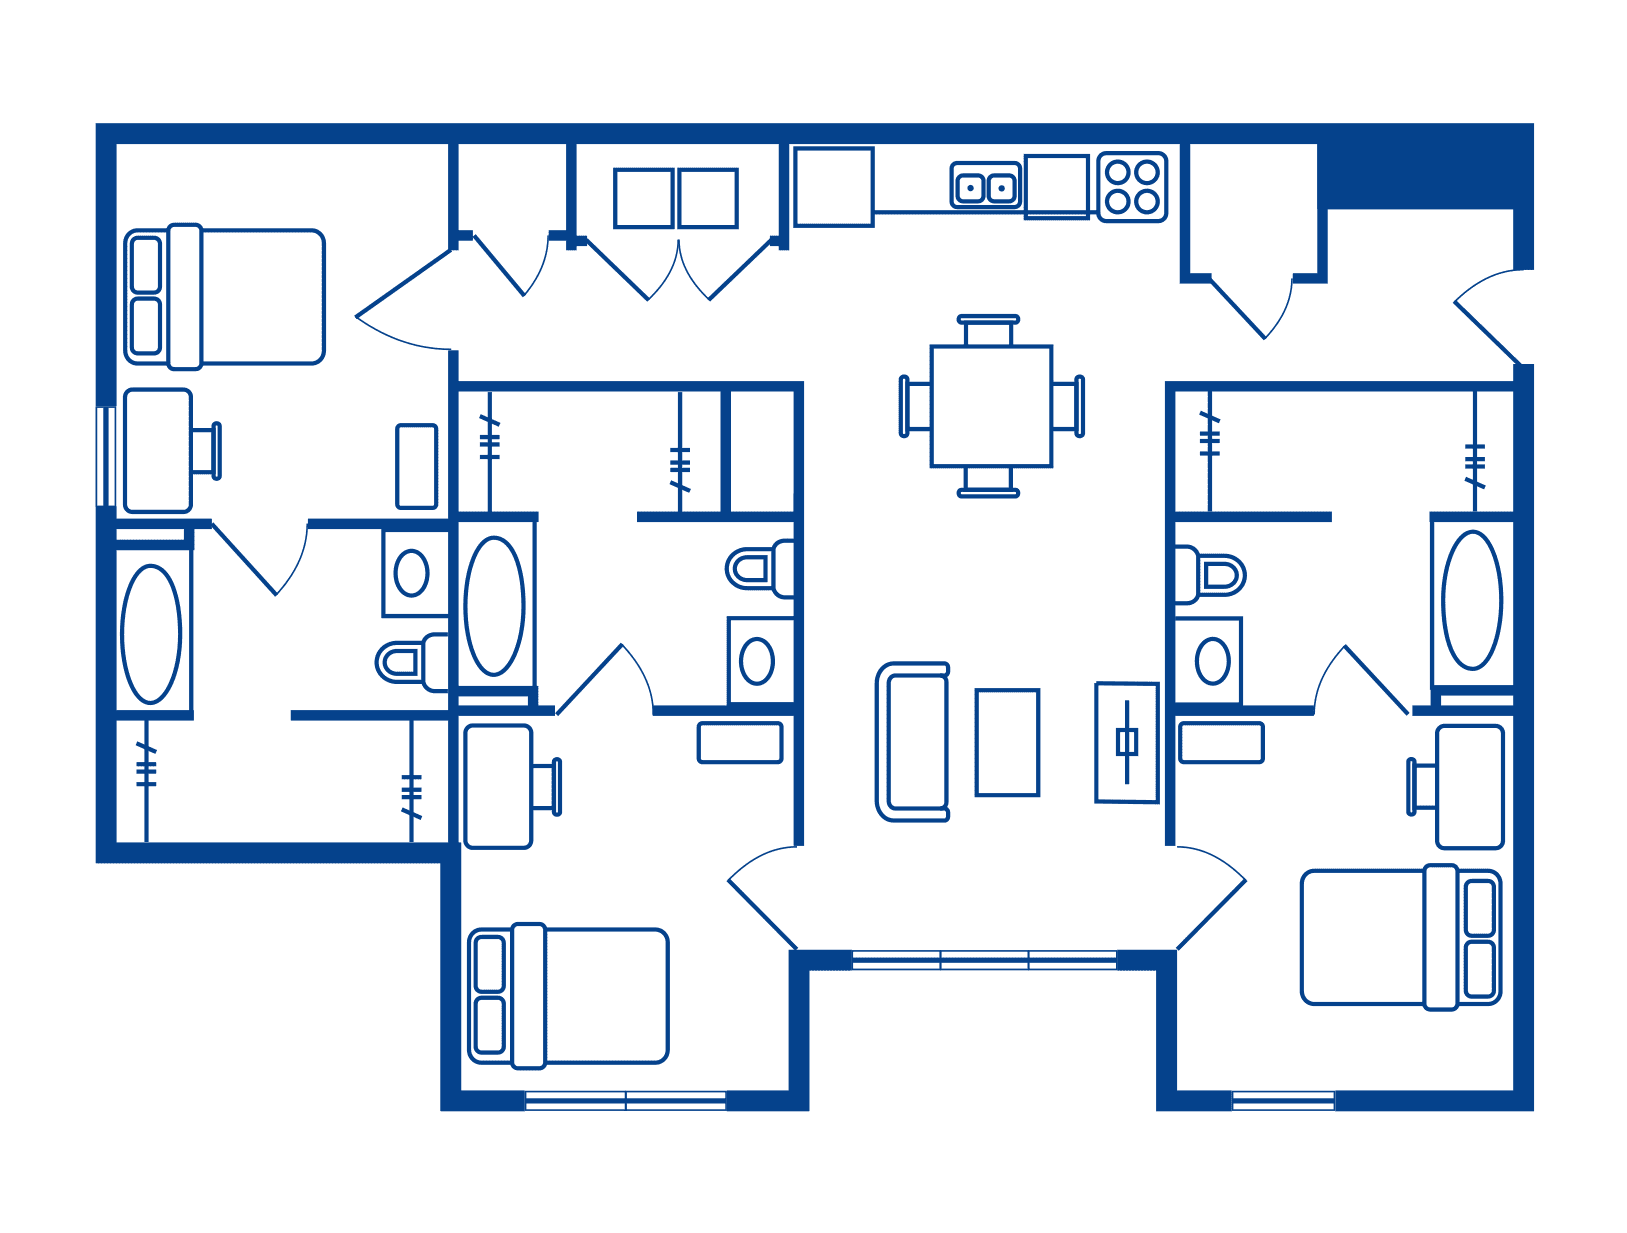 3 Bedroom & 3 Bath Apartments Near Sacramento